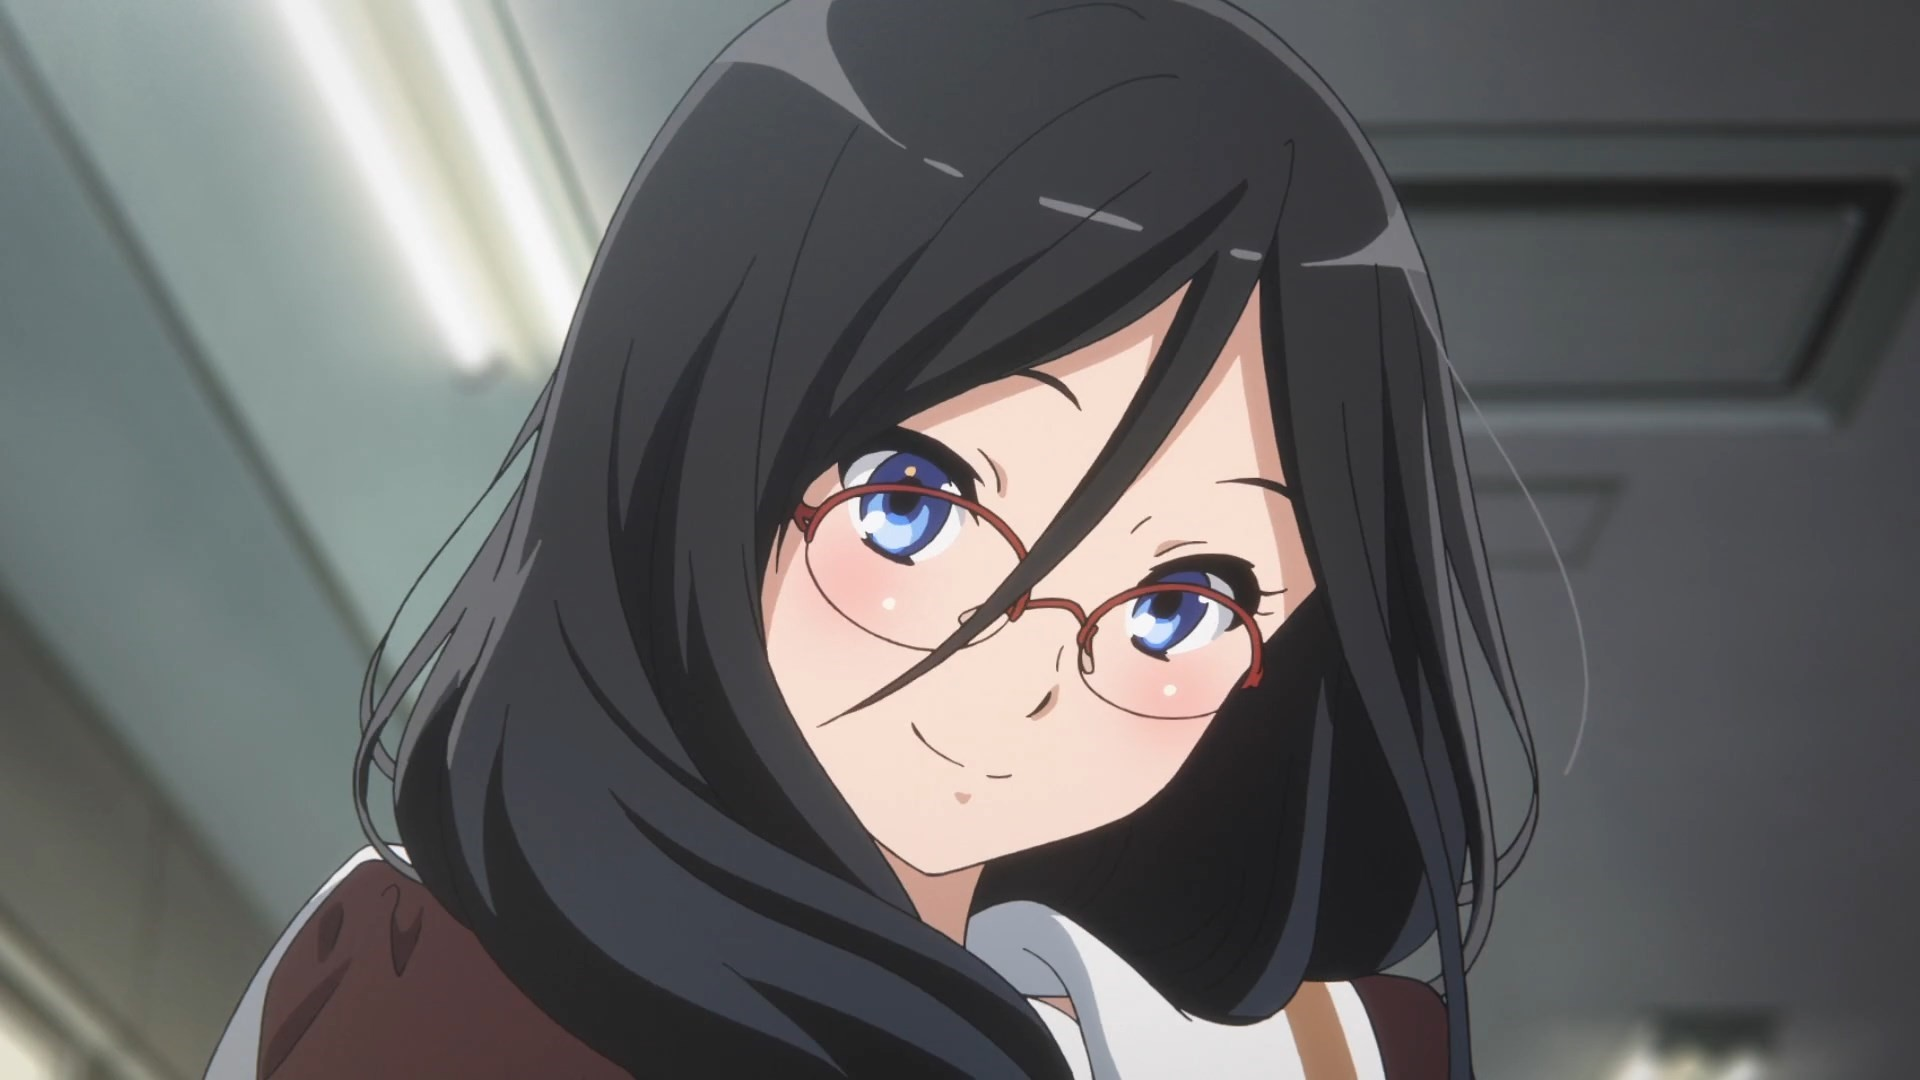 Anime Girl With Glasses Pic